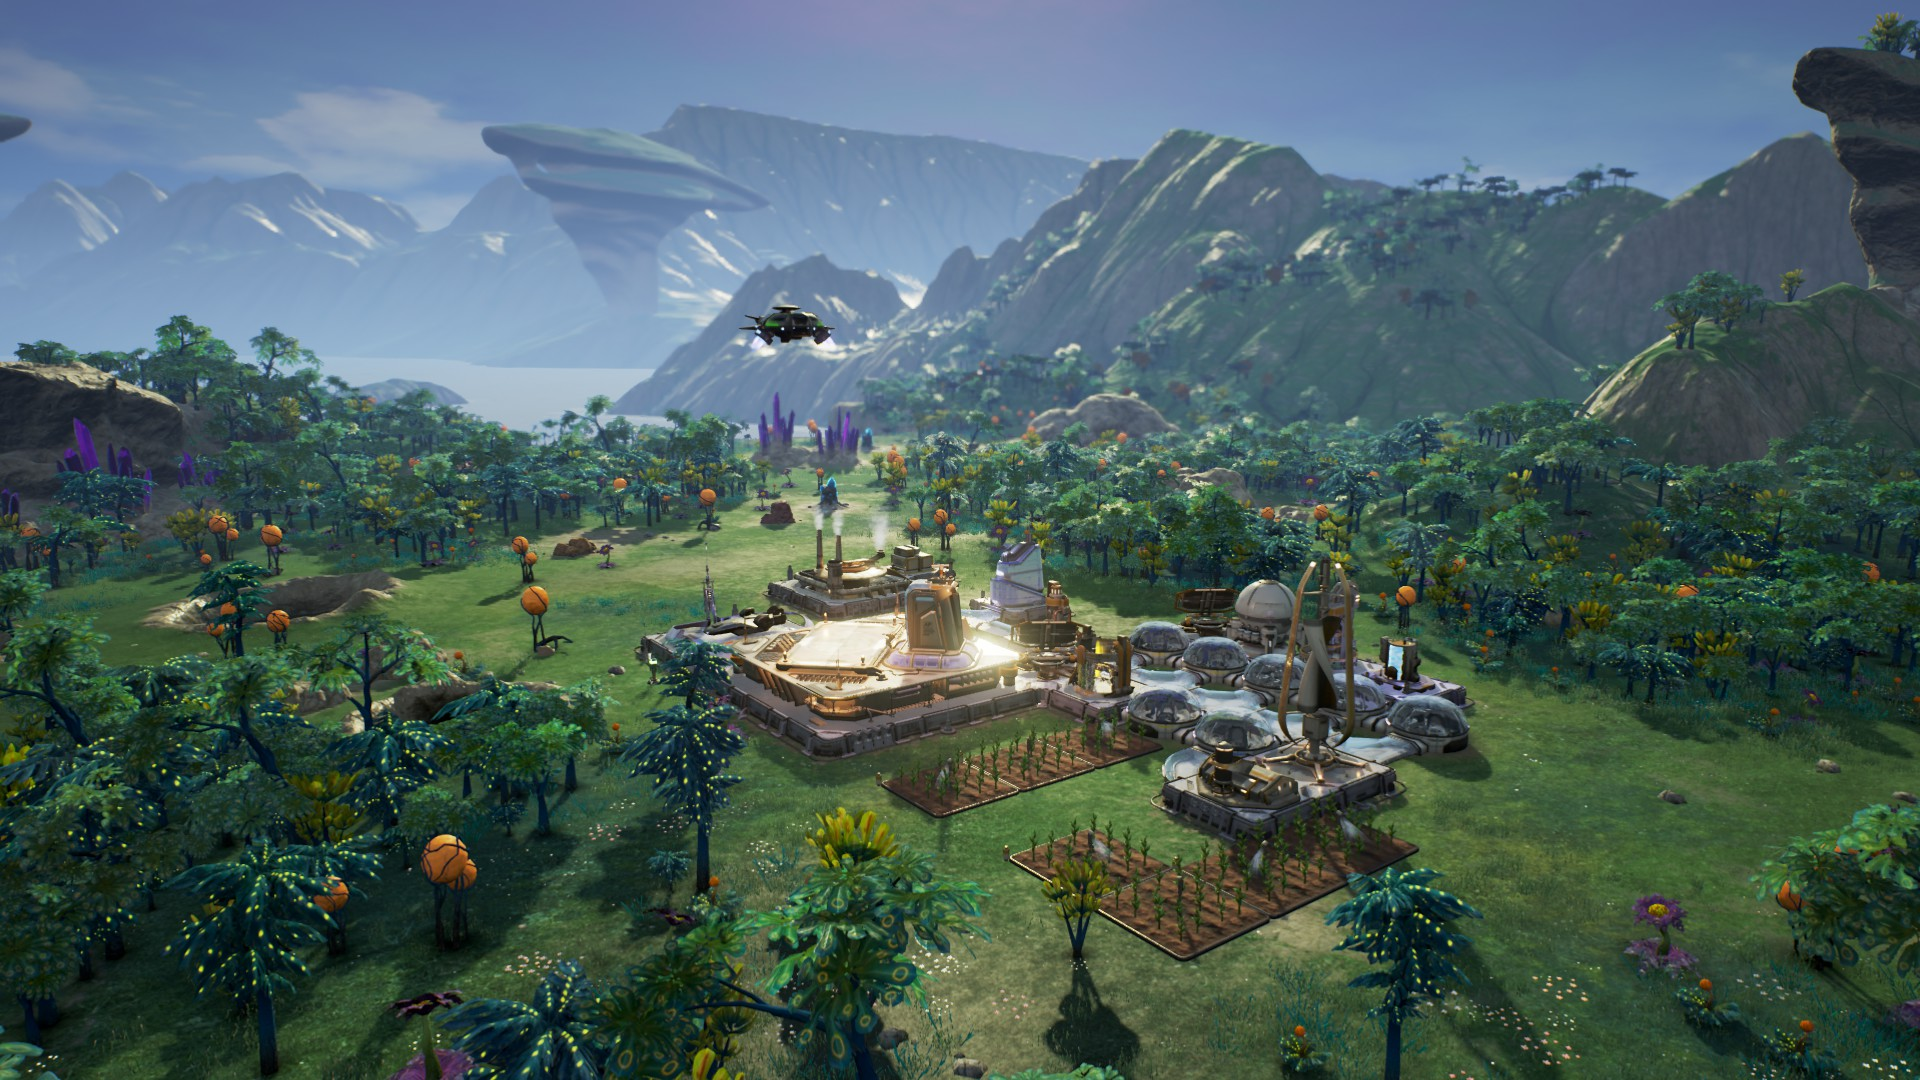 download aven colony-codex cracked full version singlelink iso rar multi language free for pc